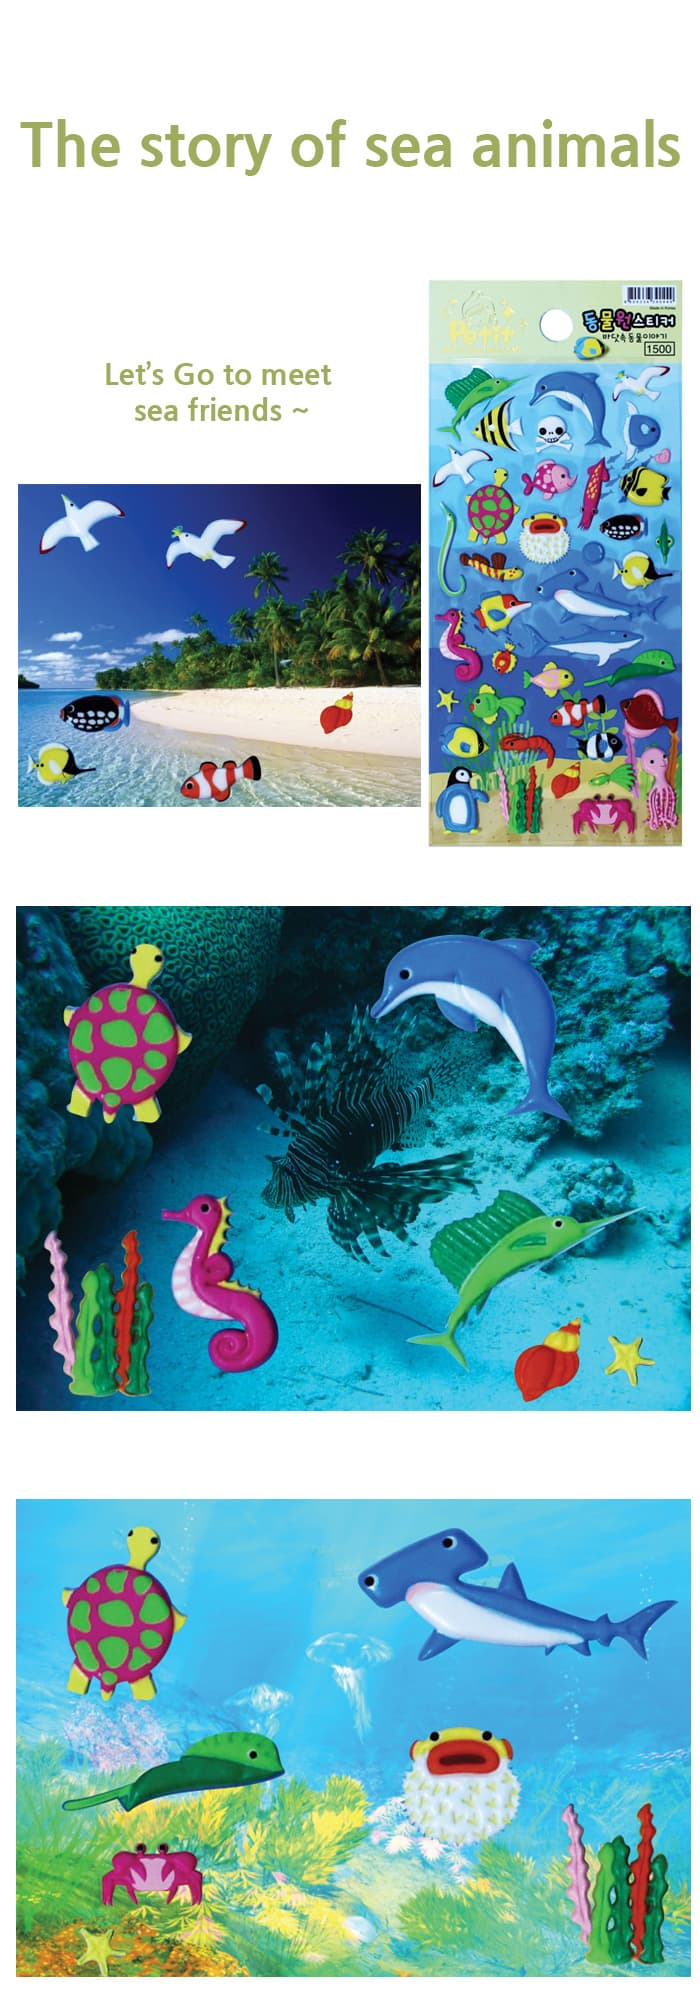 _da5113_a_ the story of sea animals